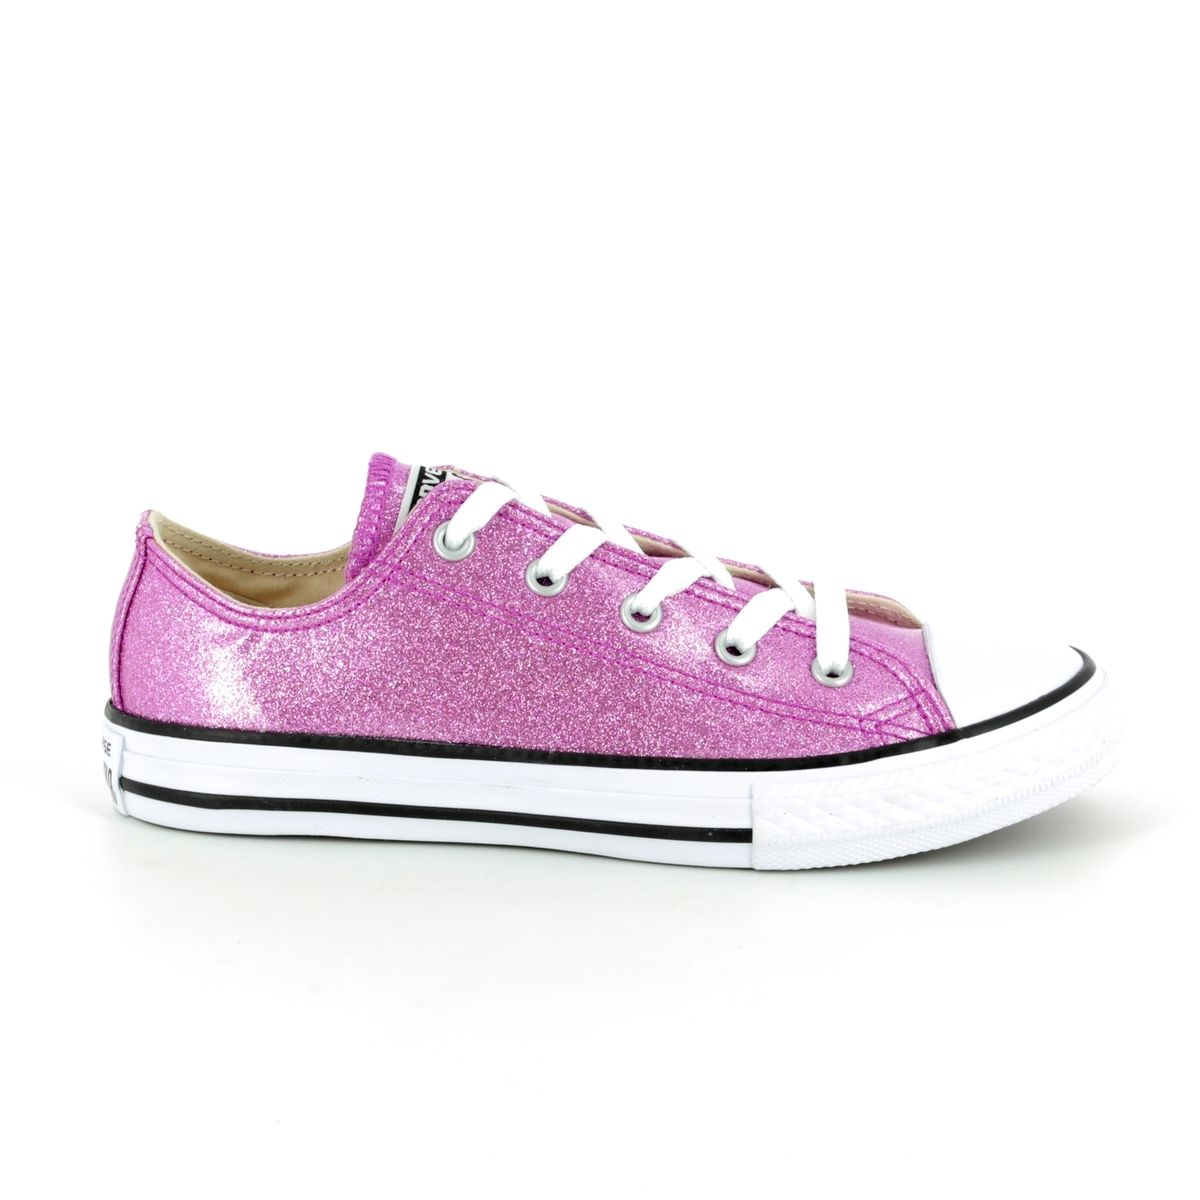 312d4a0b942b Converse All Star Ox Jnr 660047C Pink Glitter Lacing Trainers